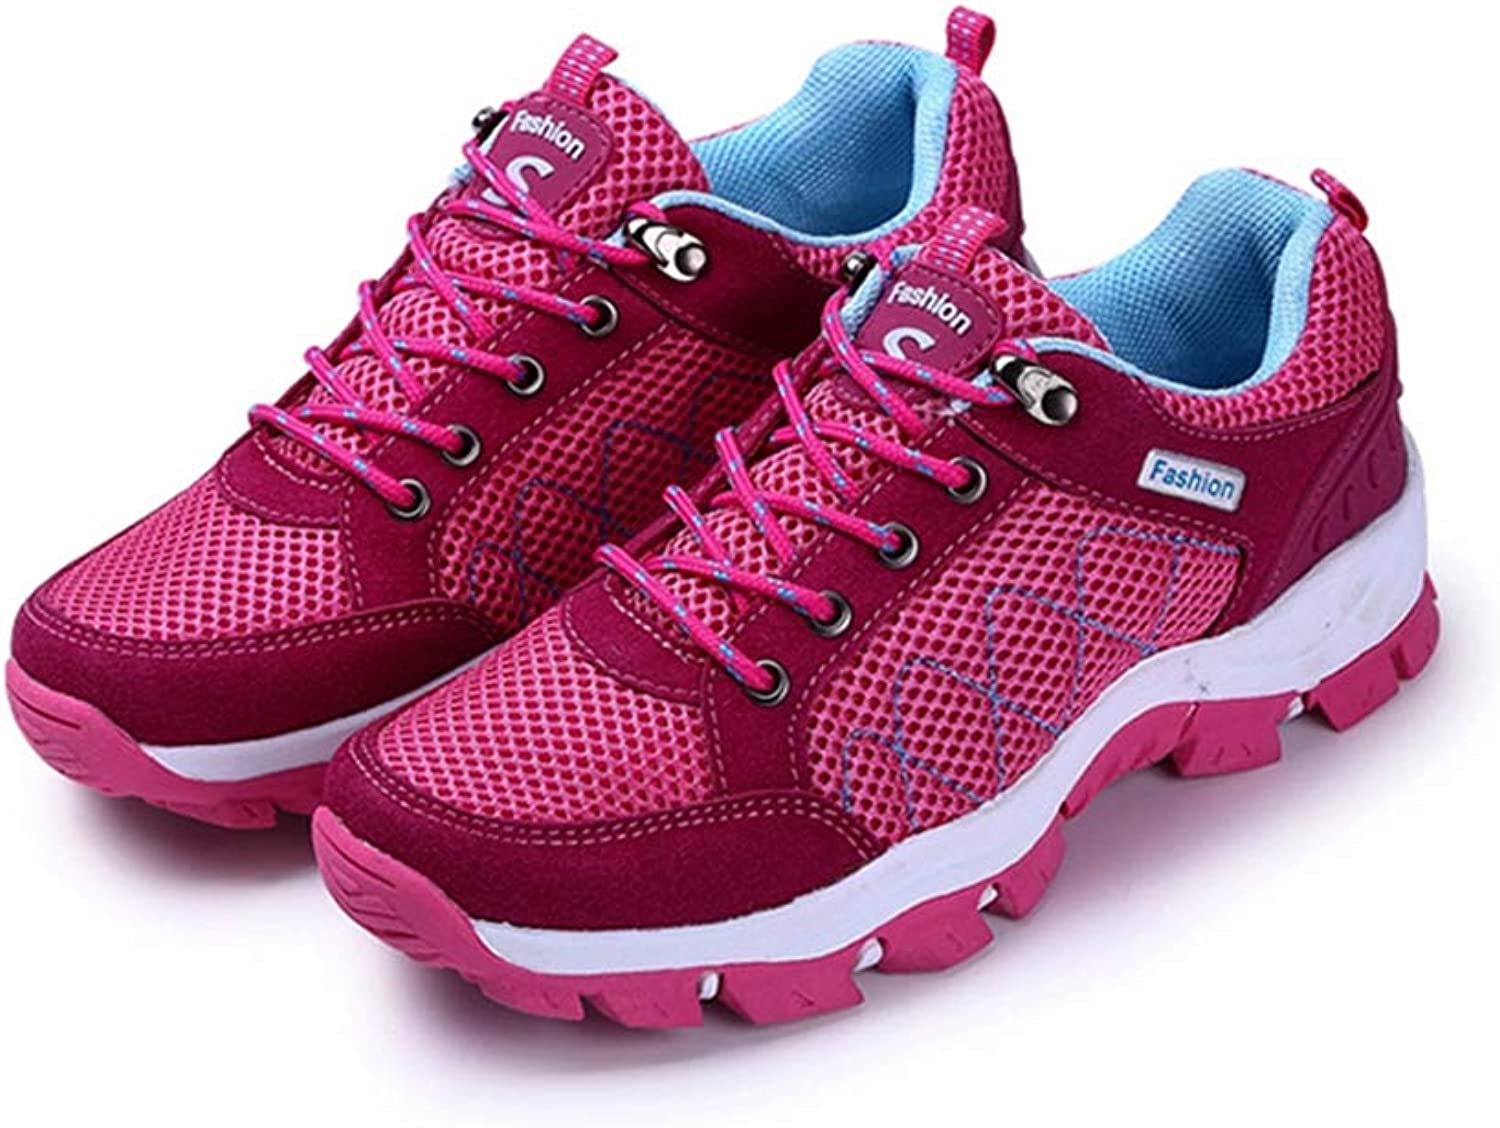 ASO-SLING Women's Fashion Comfortable Sneakers Breathable Mesh Tennis Athletic Running shoes for Fitness Sports Walking